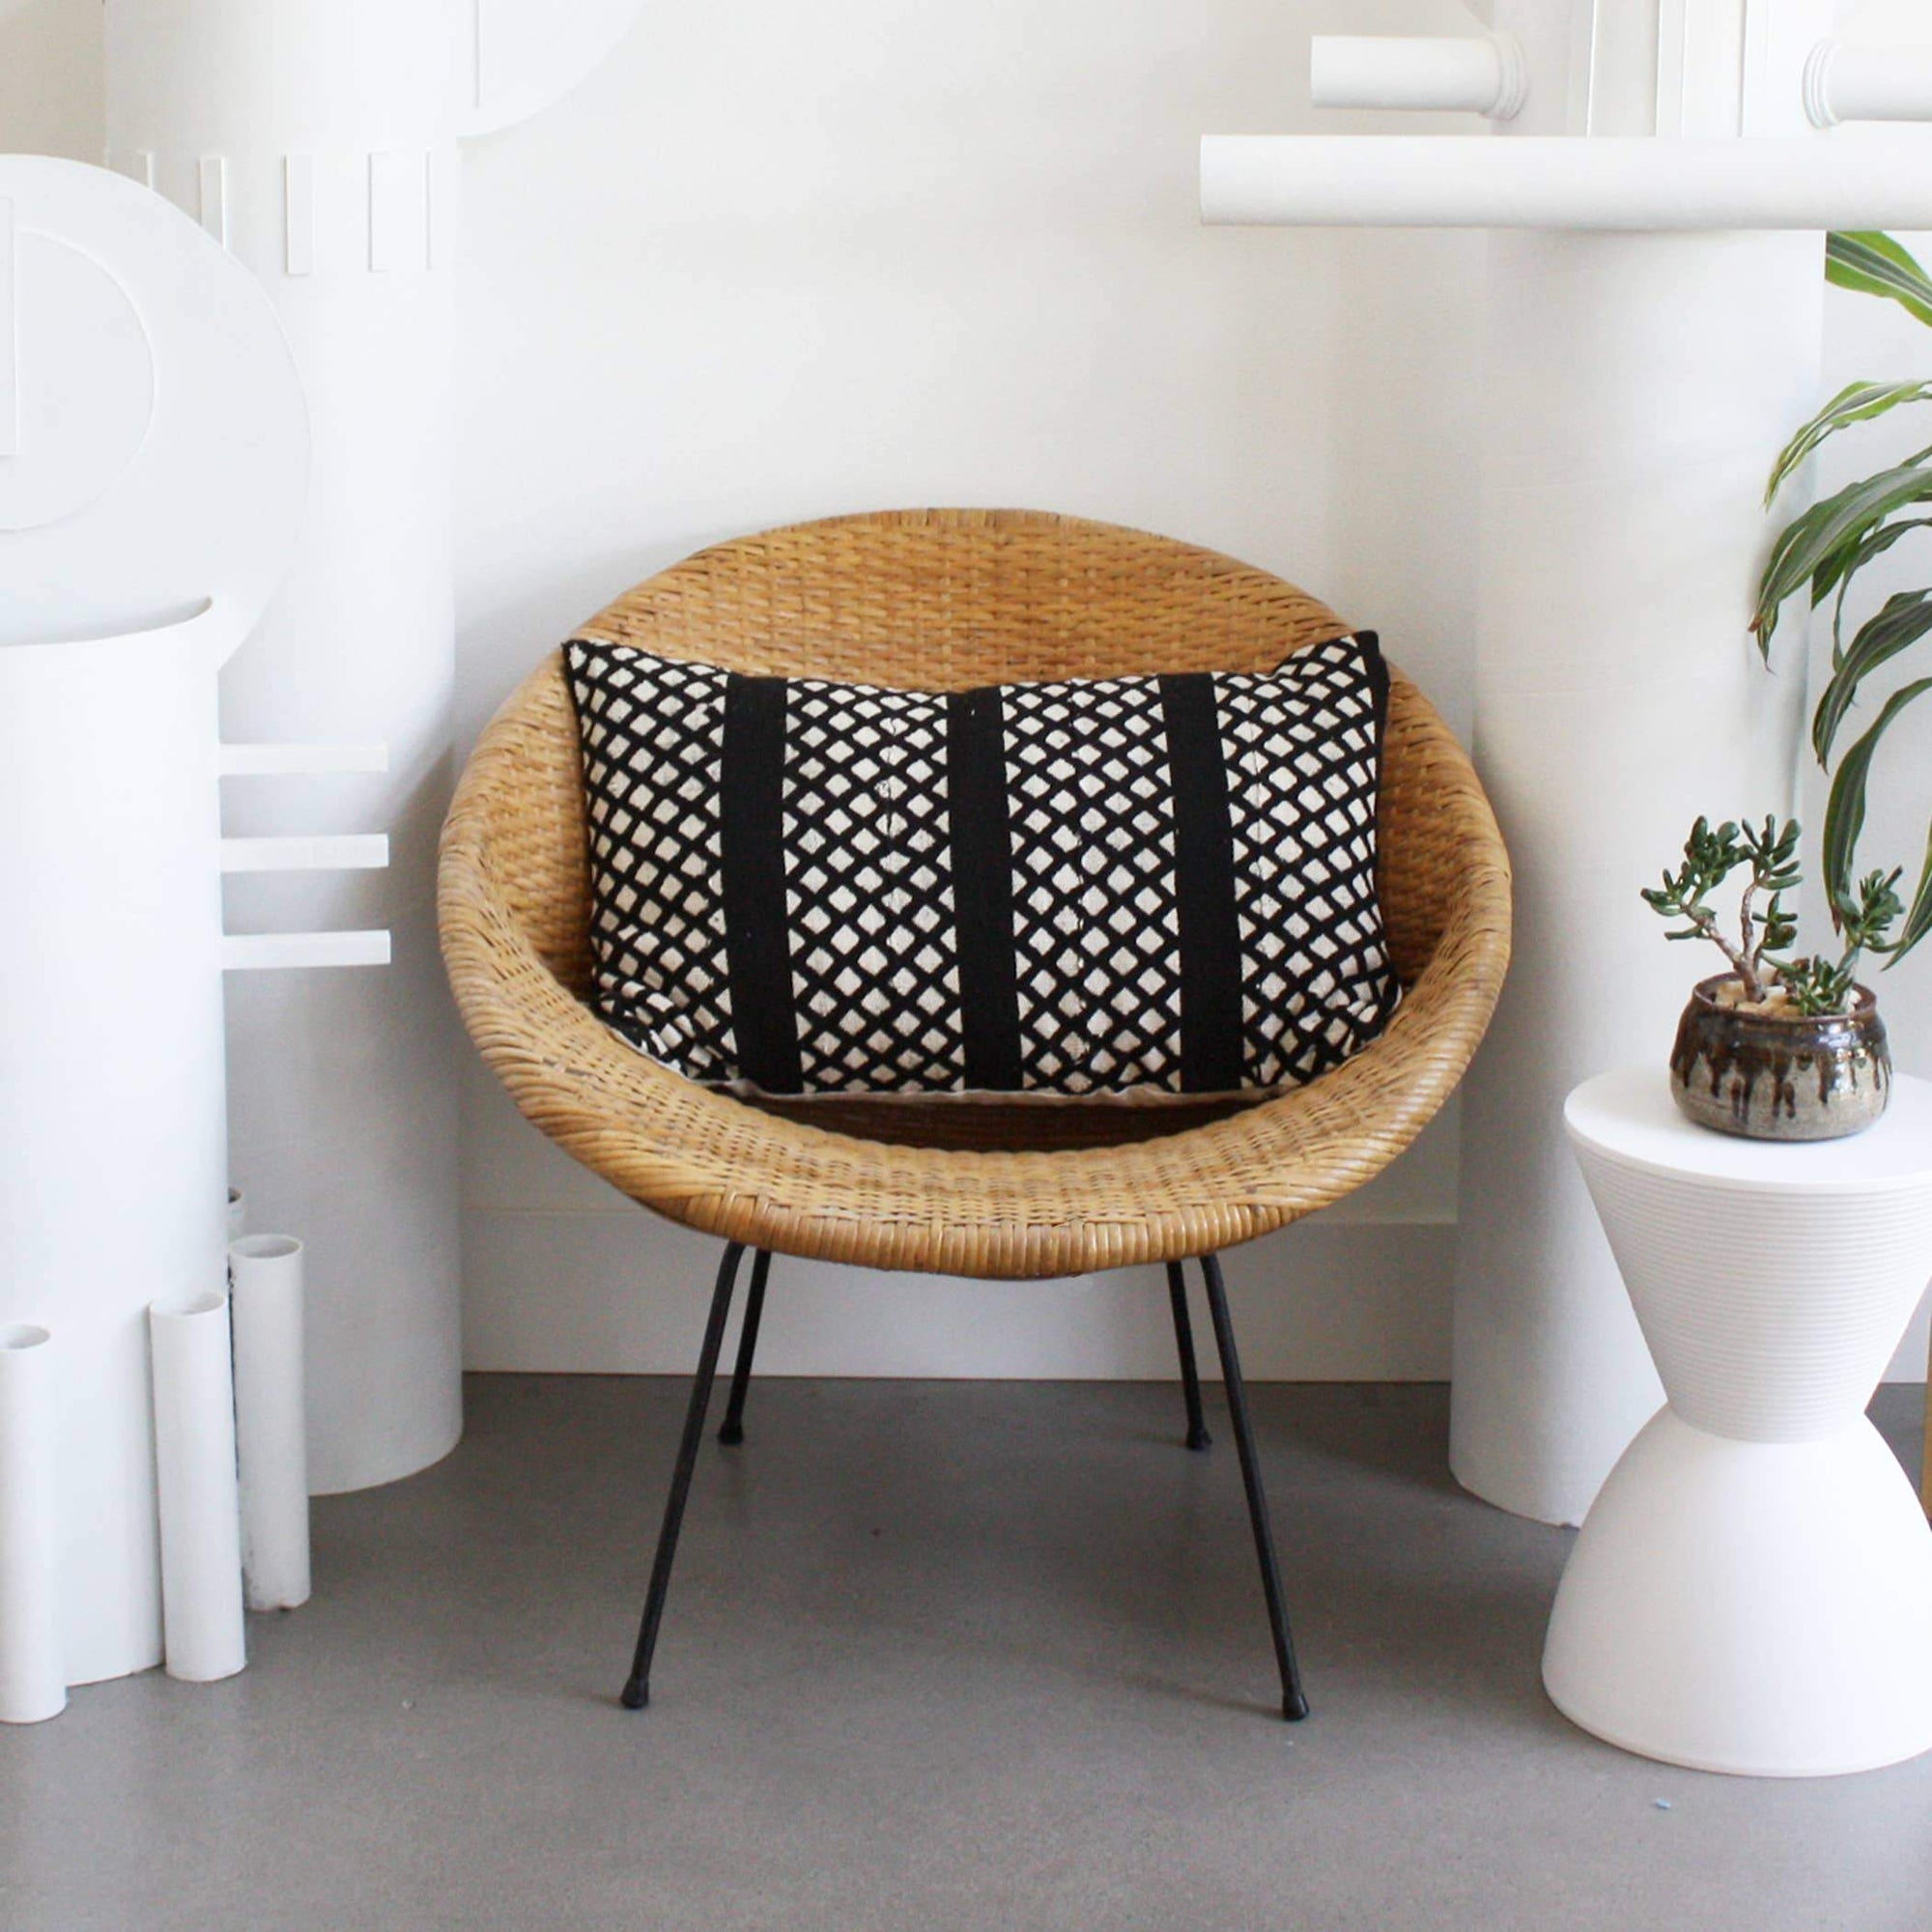 Black Trellis Mudcloth Lumbar Pillow Cover pillow Norwegian Wood